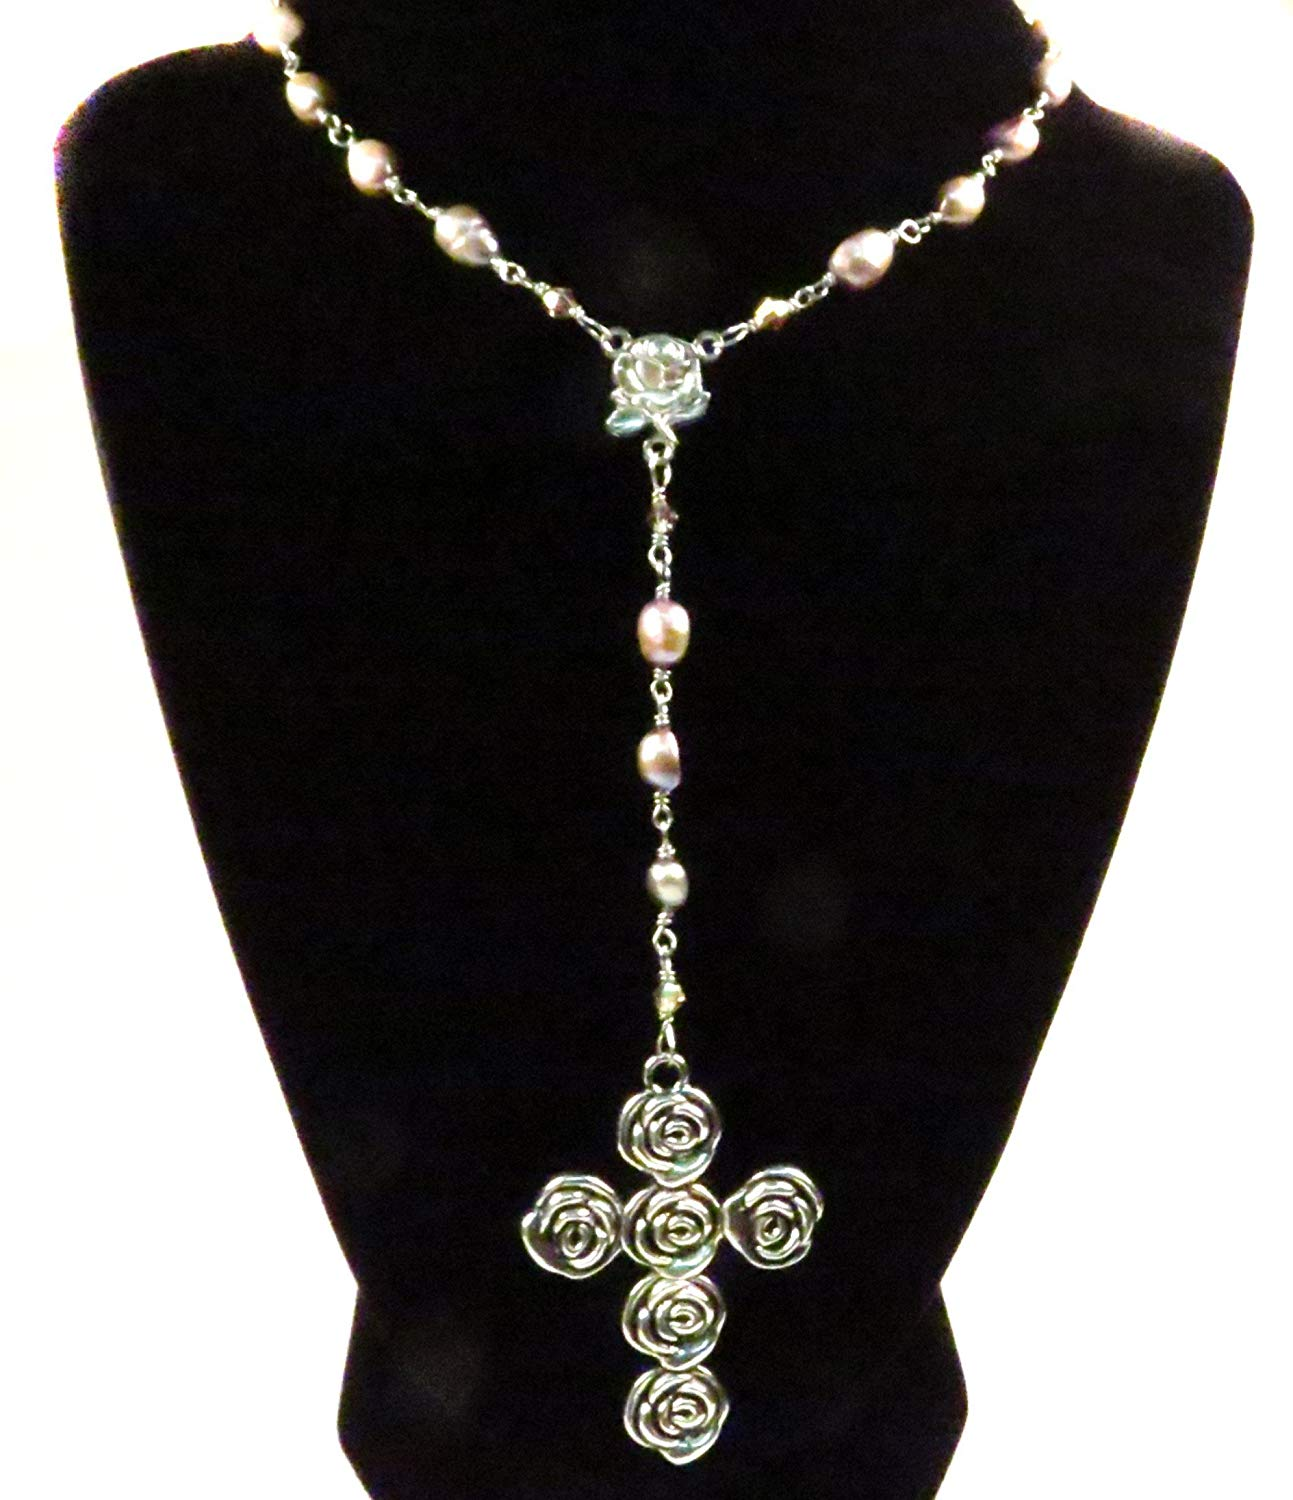 Rosary Necklace Sterling Silver Wire Freshwater Pearls Pink Mauve Handmade Unbreakable Religious Jewelry Christian Gift Ornate Cross Gift for Her